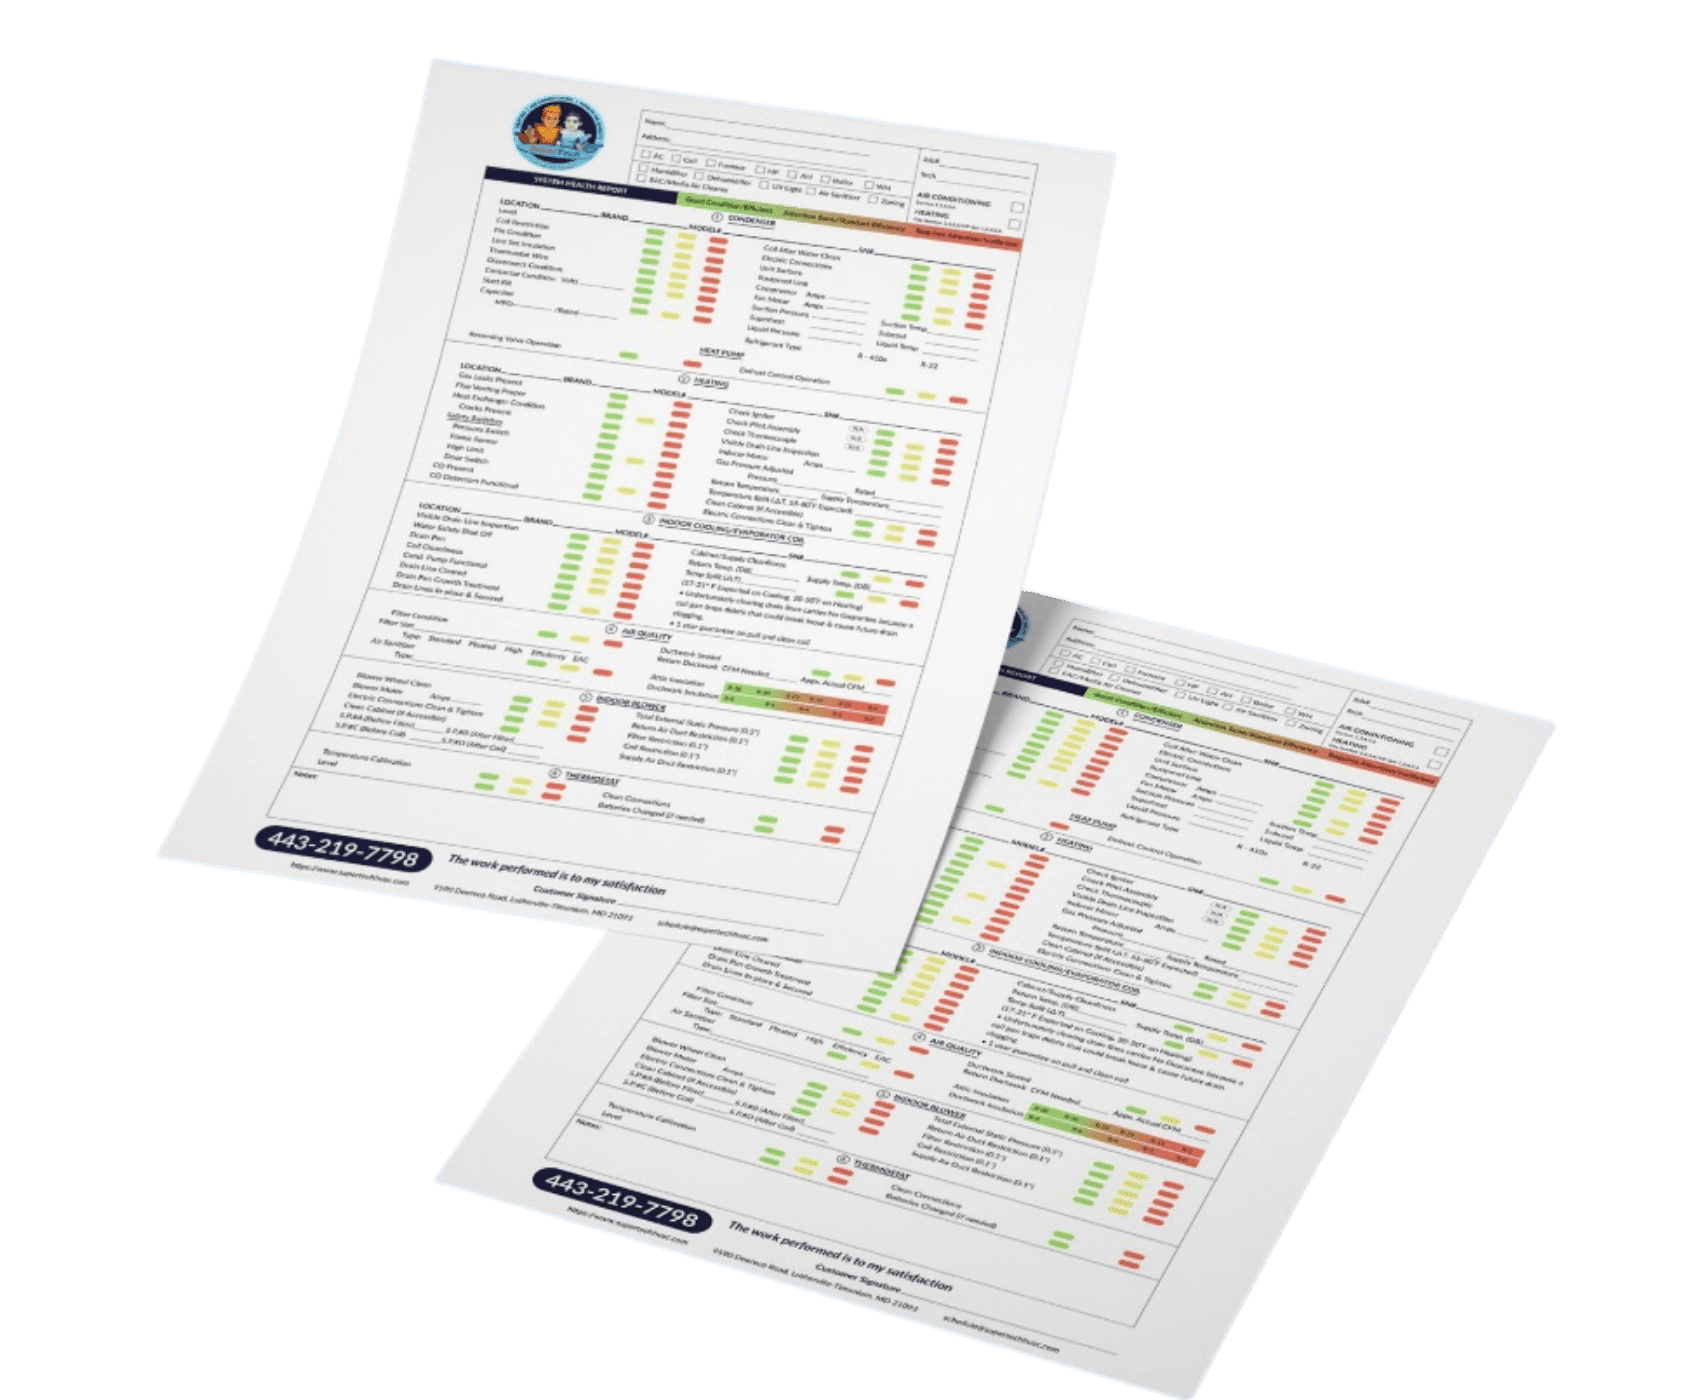 furnace tune up system health report